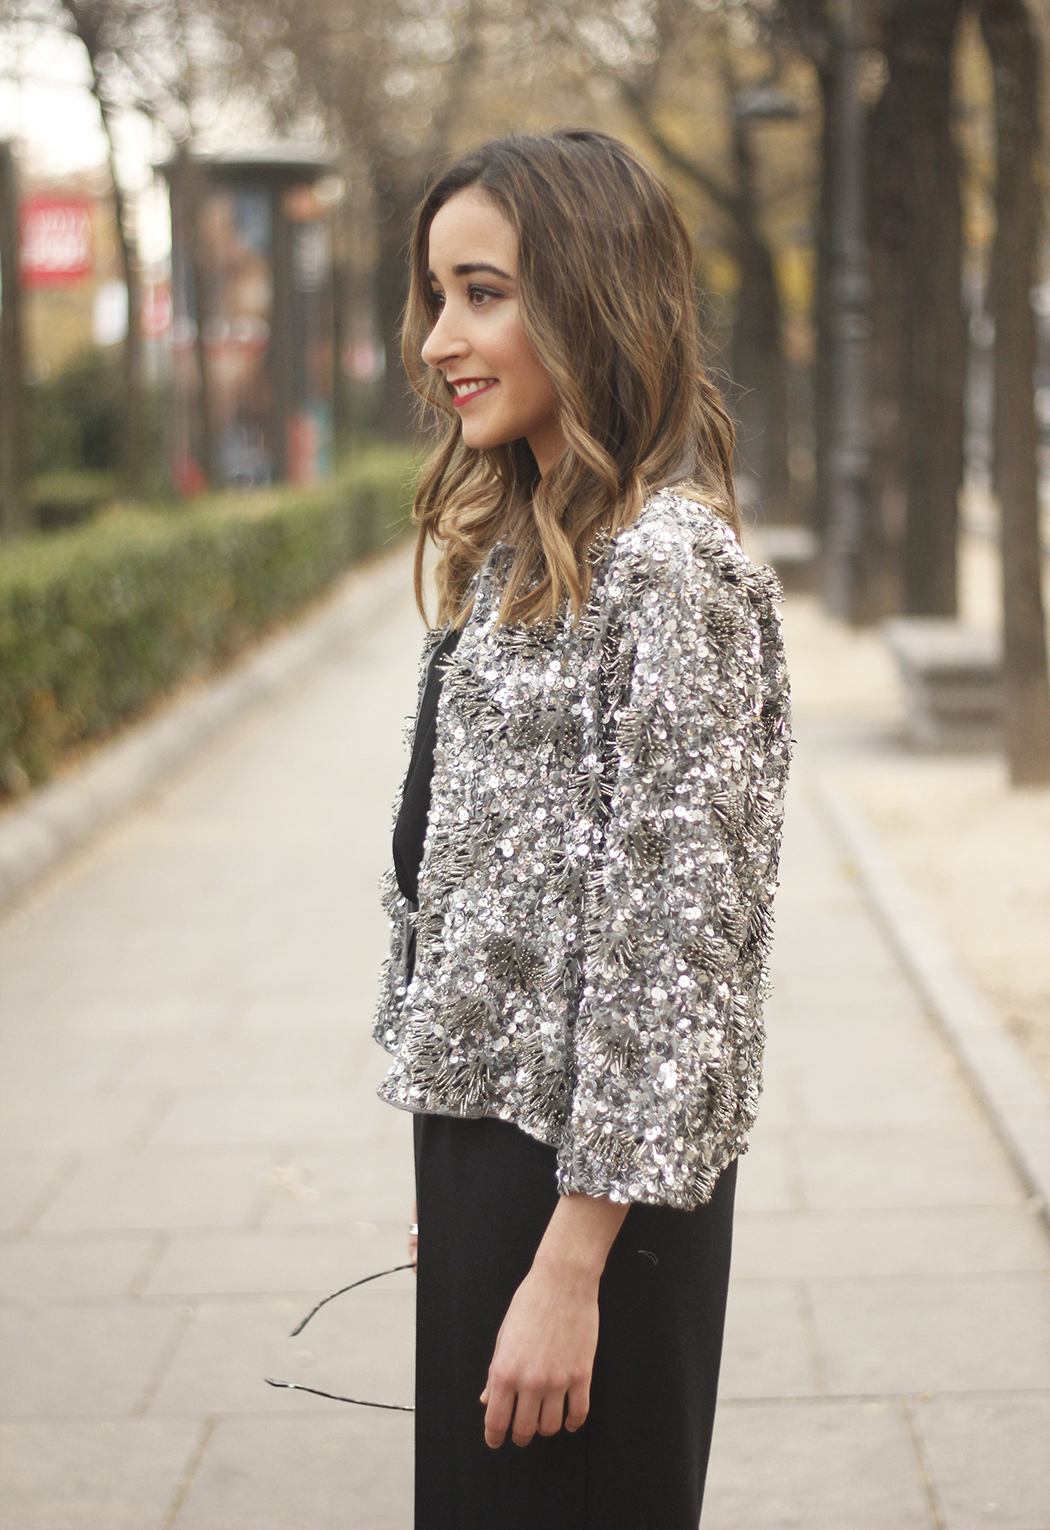 sequined jacket cropped trousers winter outfit black heels accessories streetstyle22